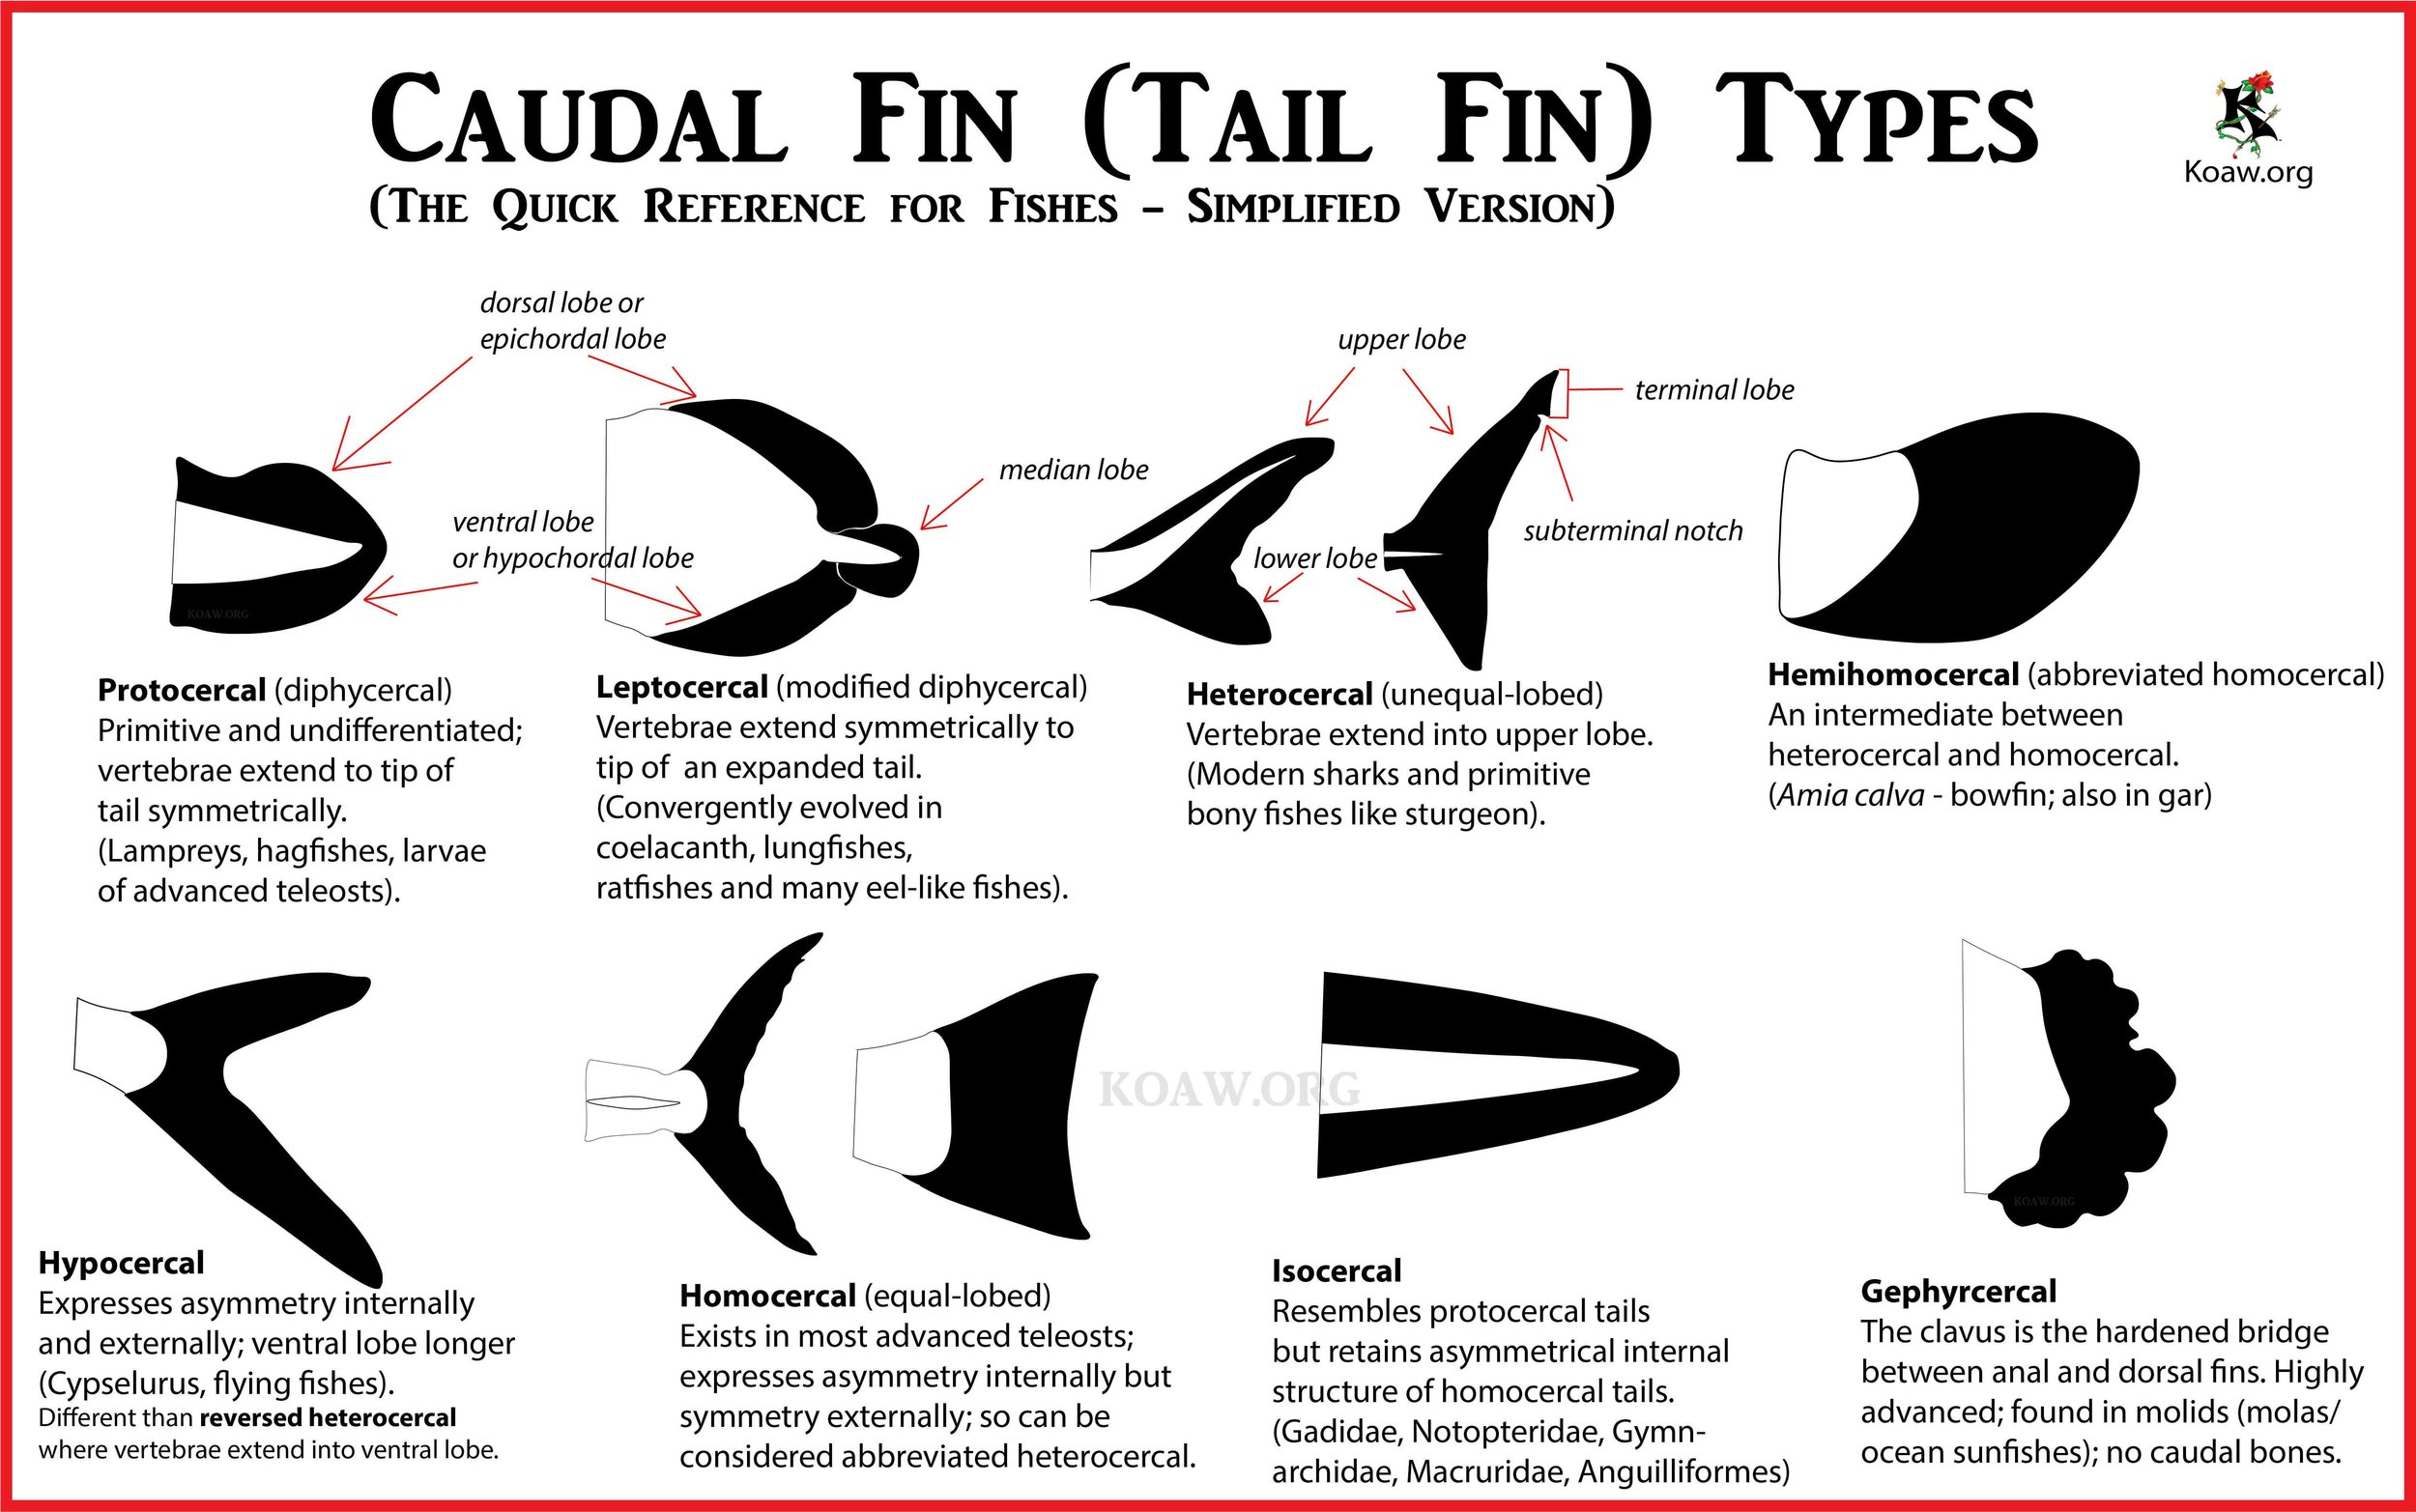 Caudal Fin (Tail Fin) Types of Fishes - By Koaw